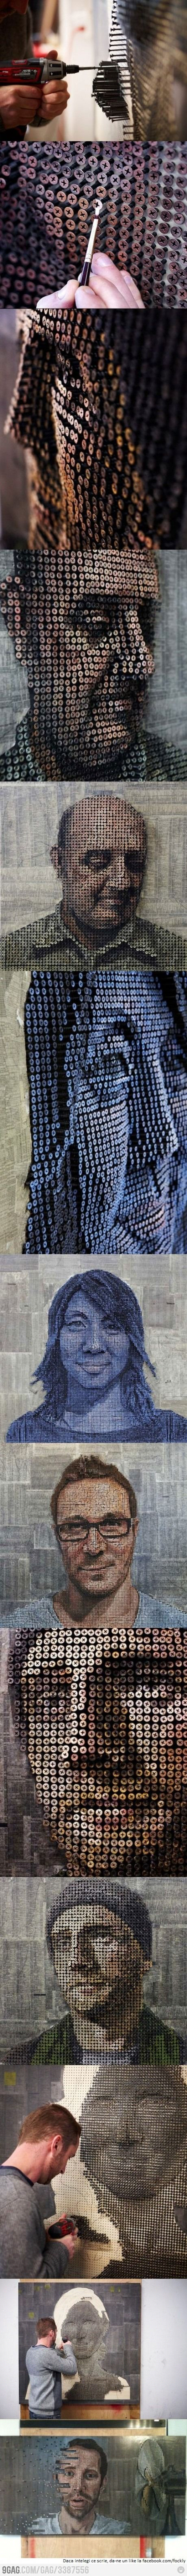 Amazing 3D portraits made out of screws by Andrew Myers: Nails Art, The Artists, Andrew Myers, 3D Portraits, Amazing 3D, Screw Art, Families Portraits, Screwart, Art Nails